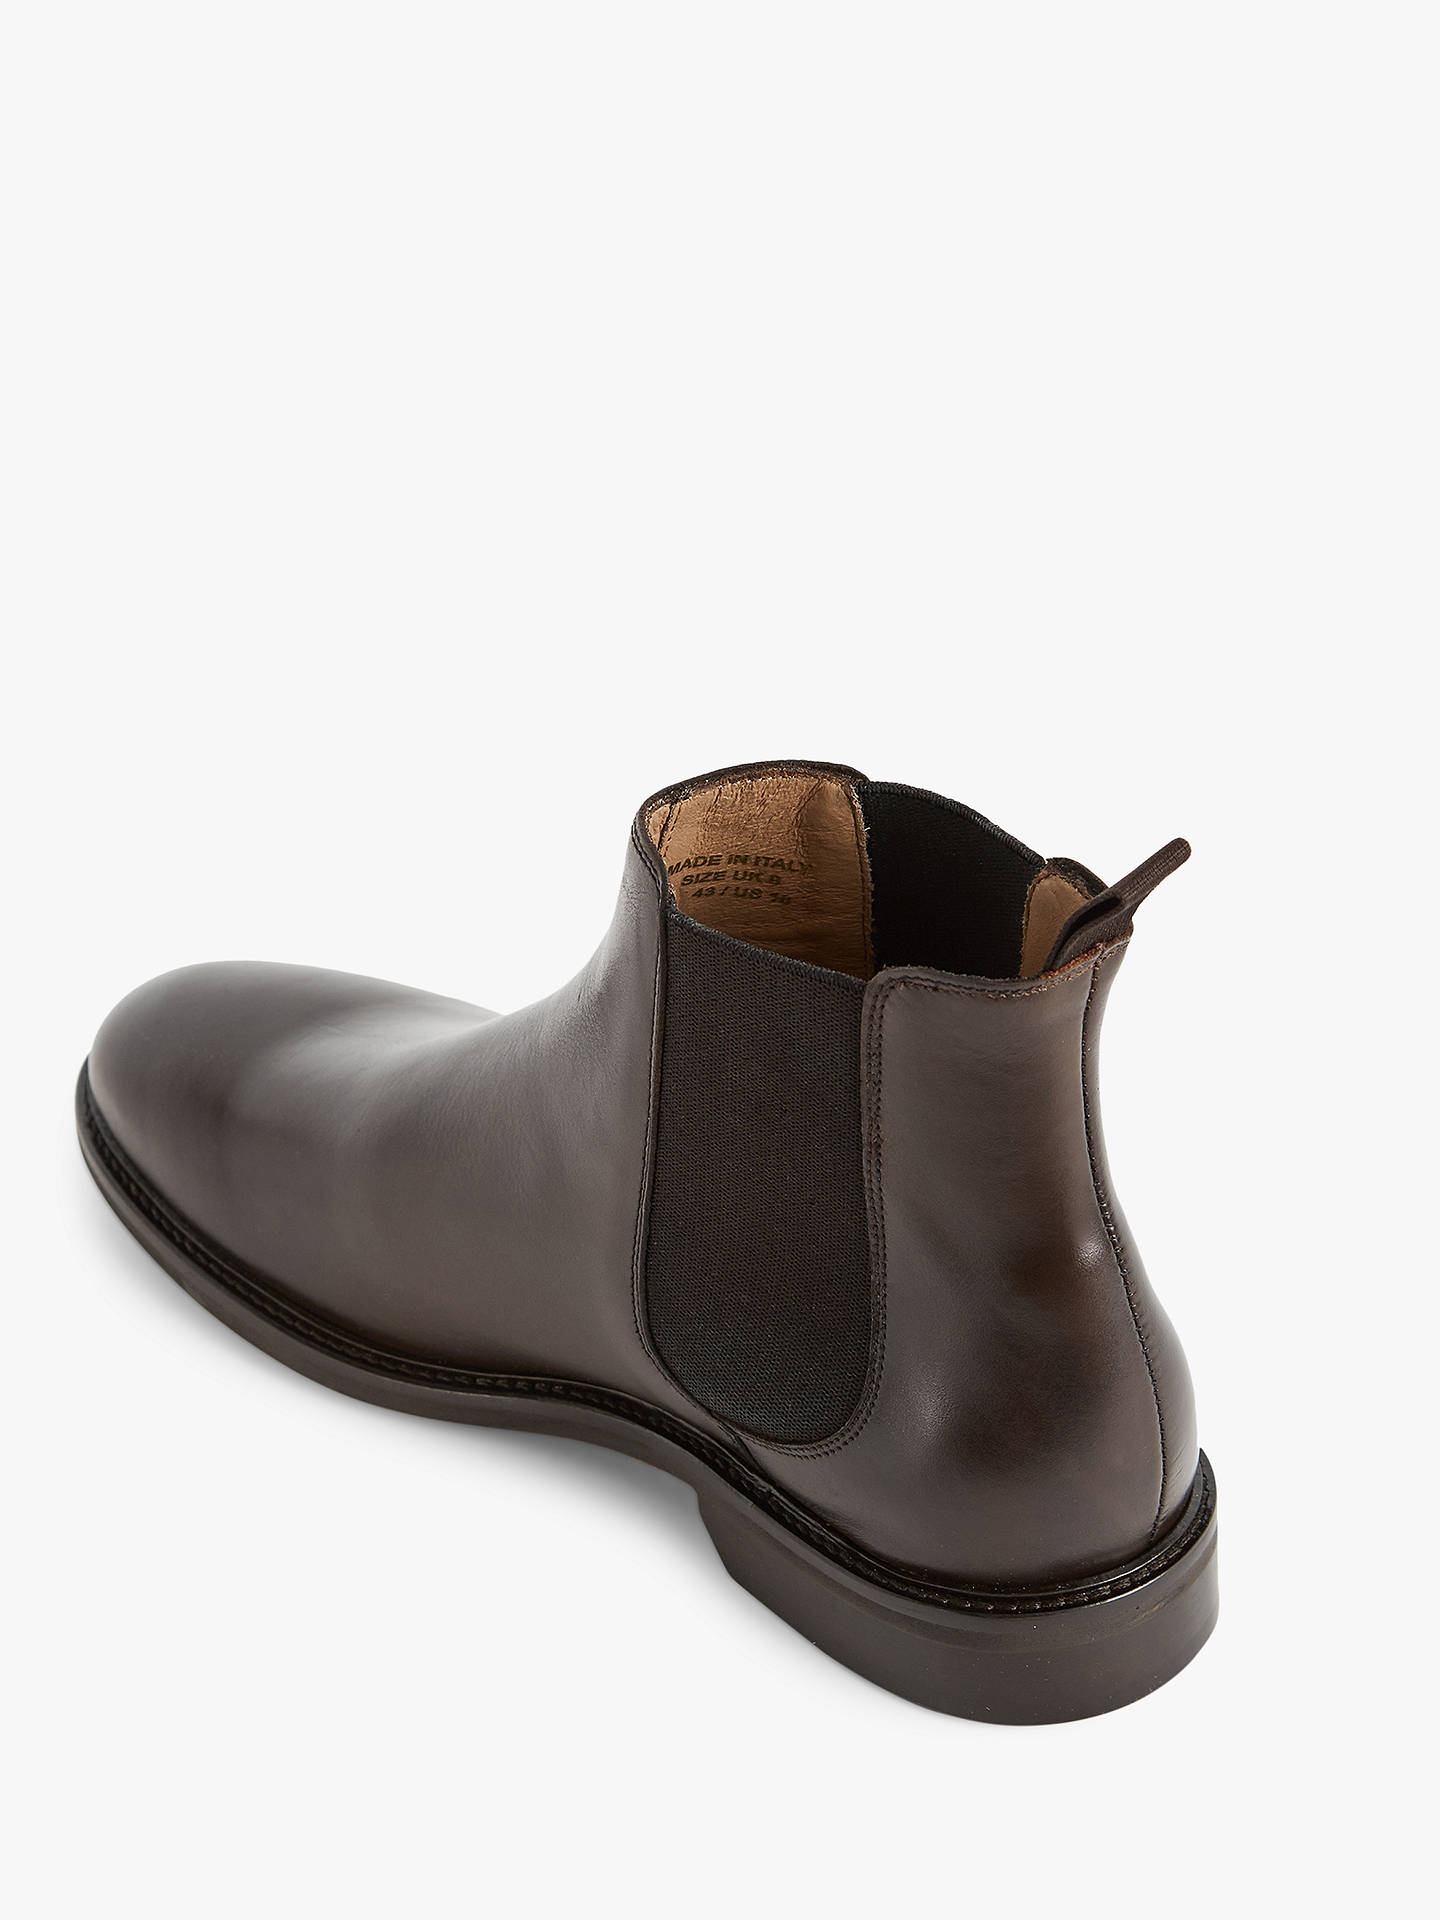 Buy Reiss Tenor Chelsea Boots, Dark Brown, 7 Online at johnlewis.com